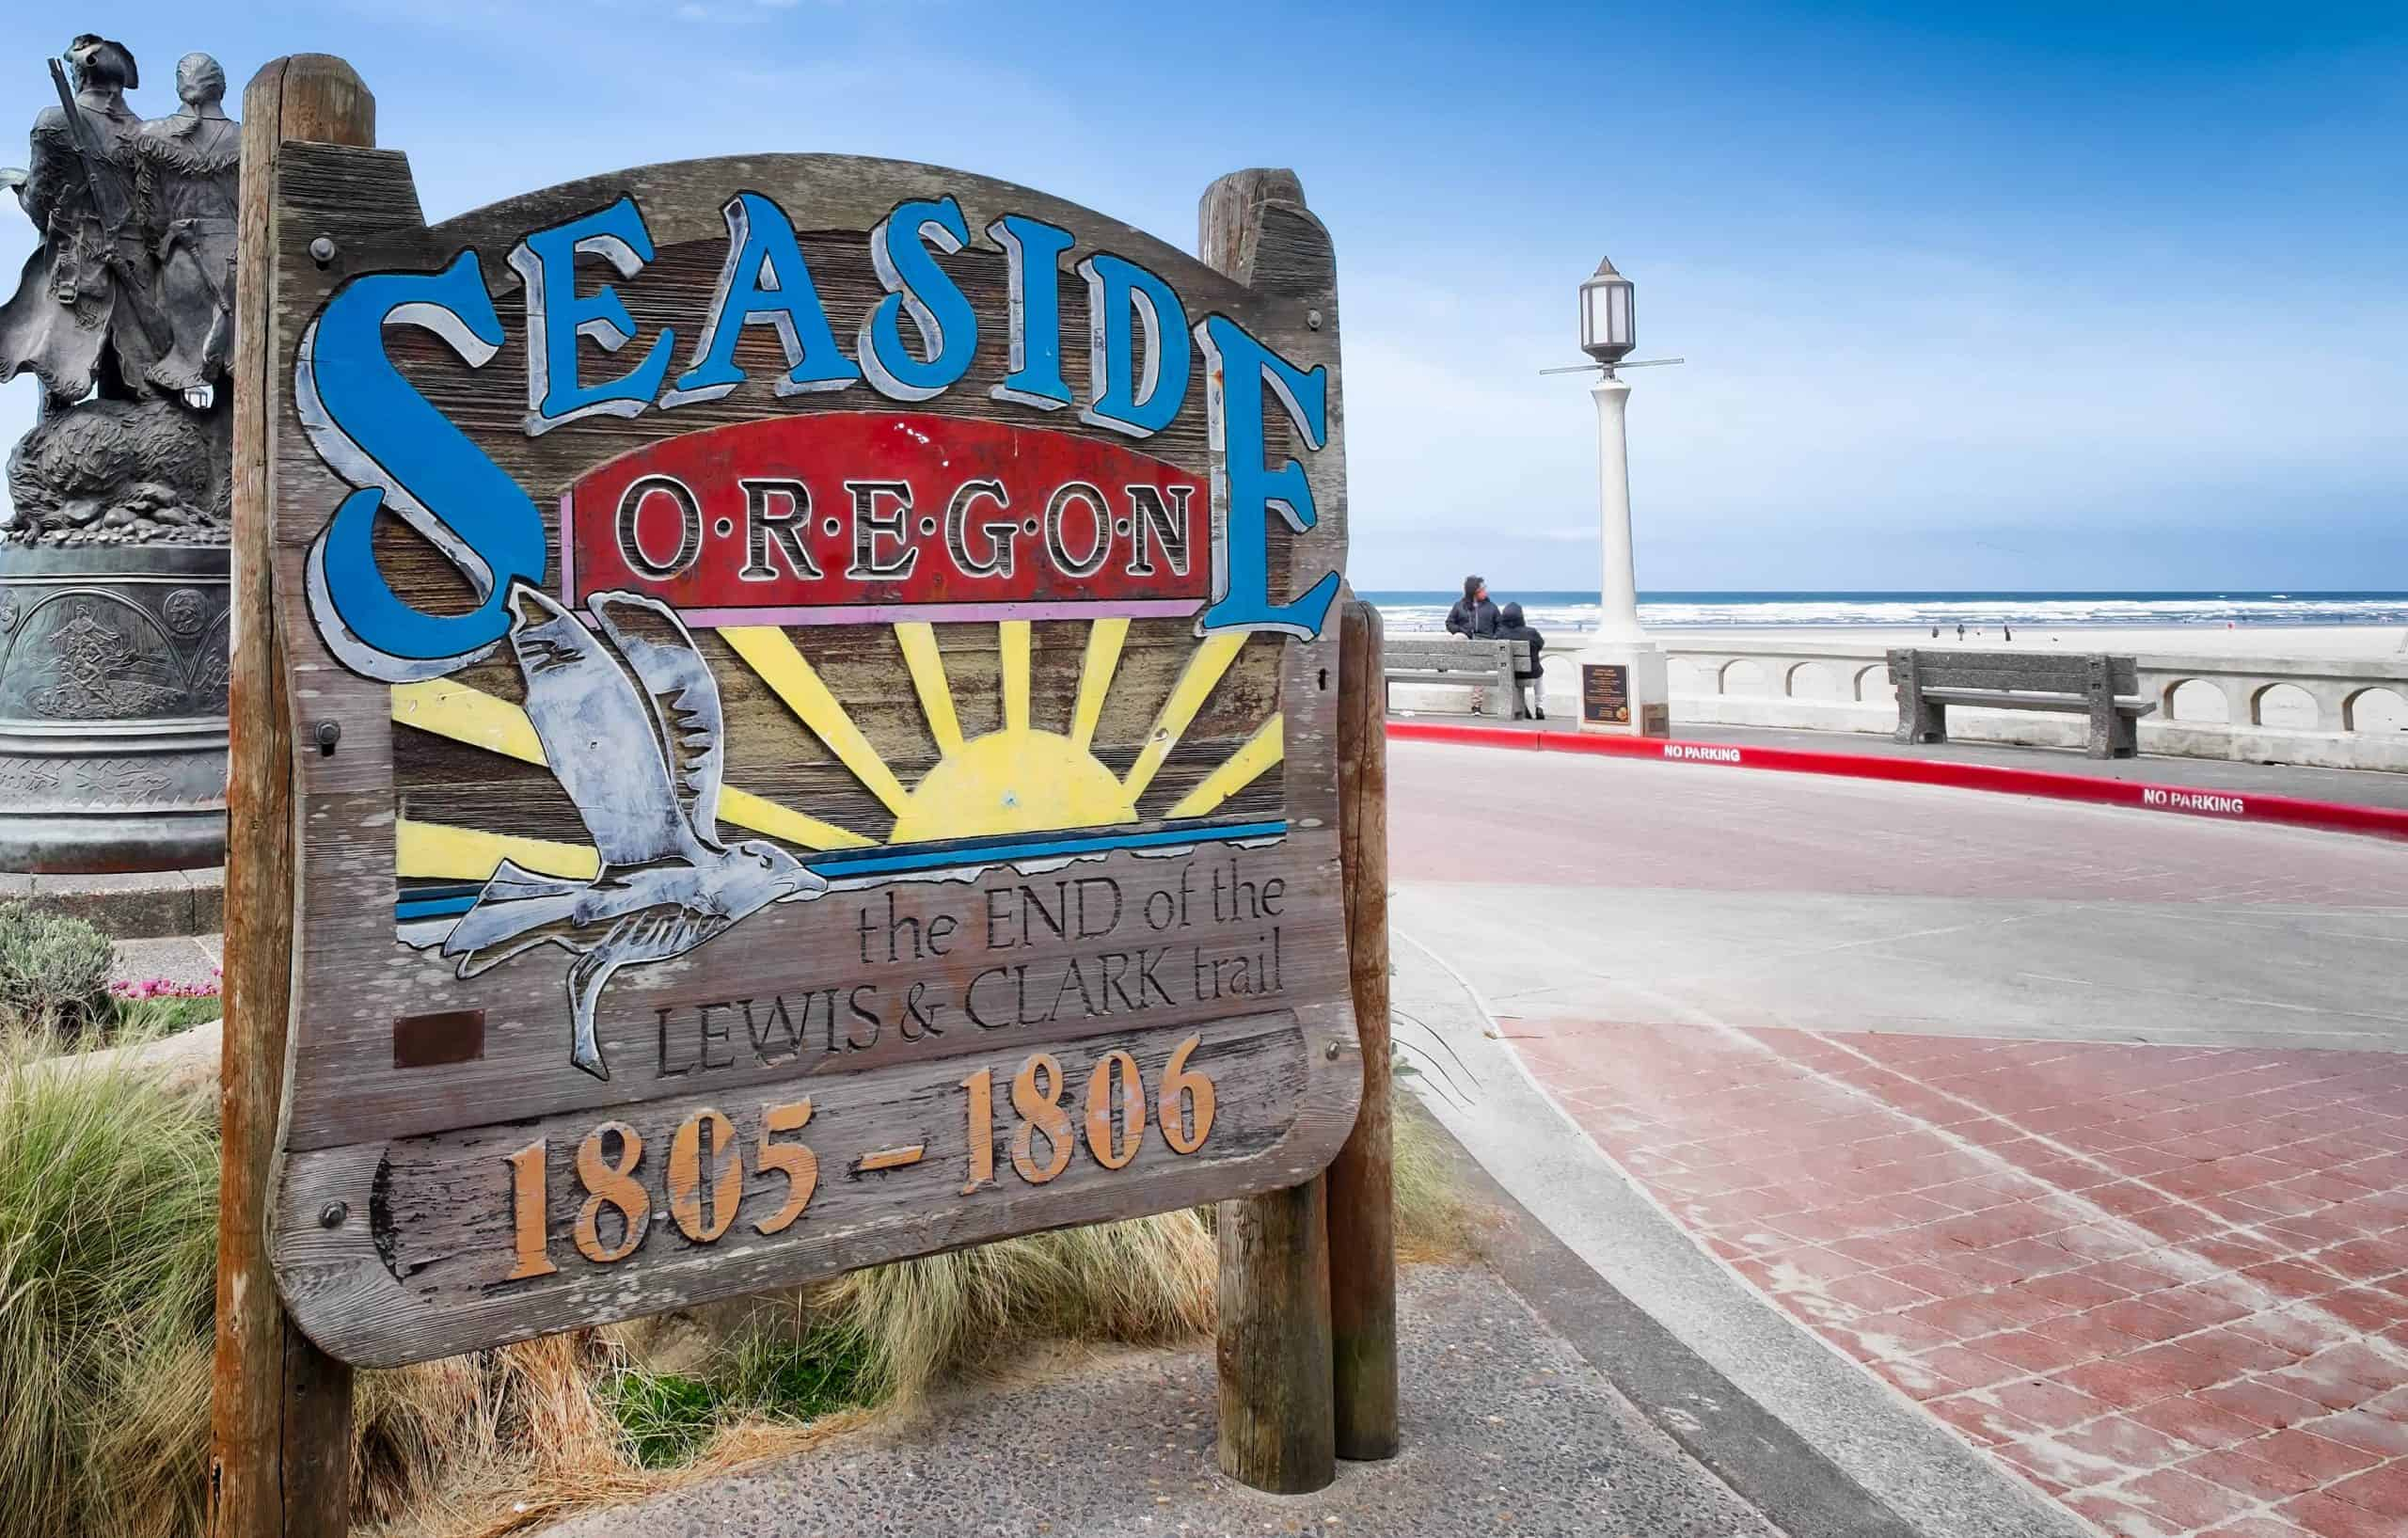 Seaside Oregon history